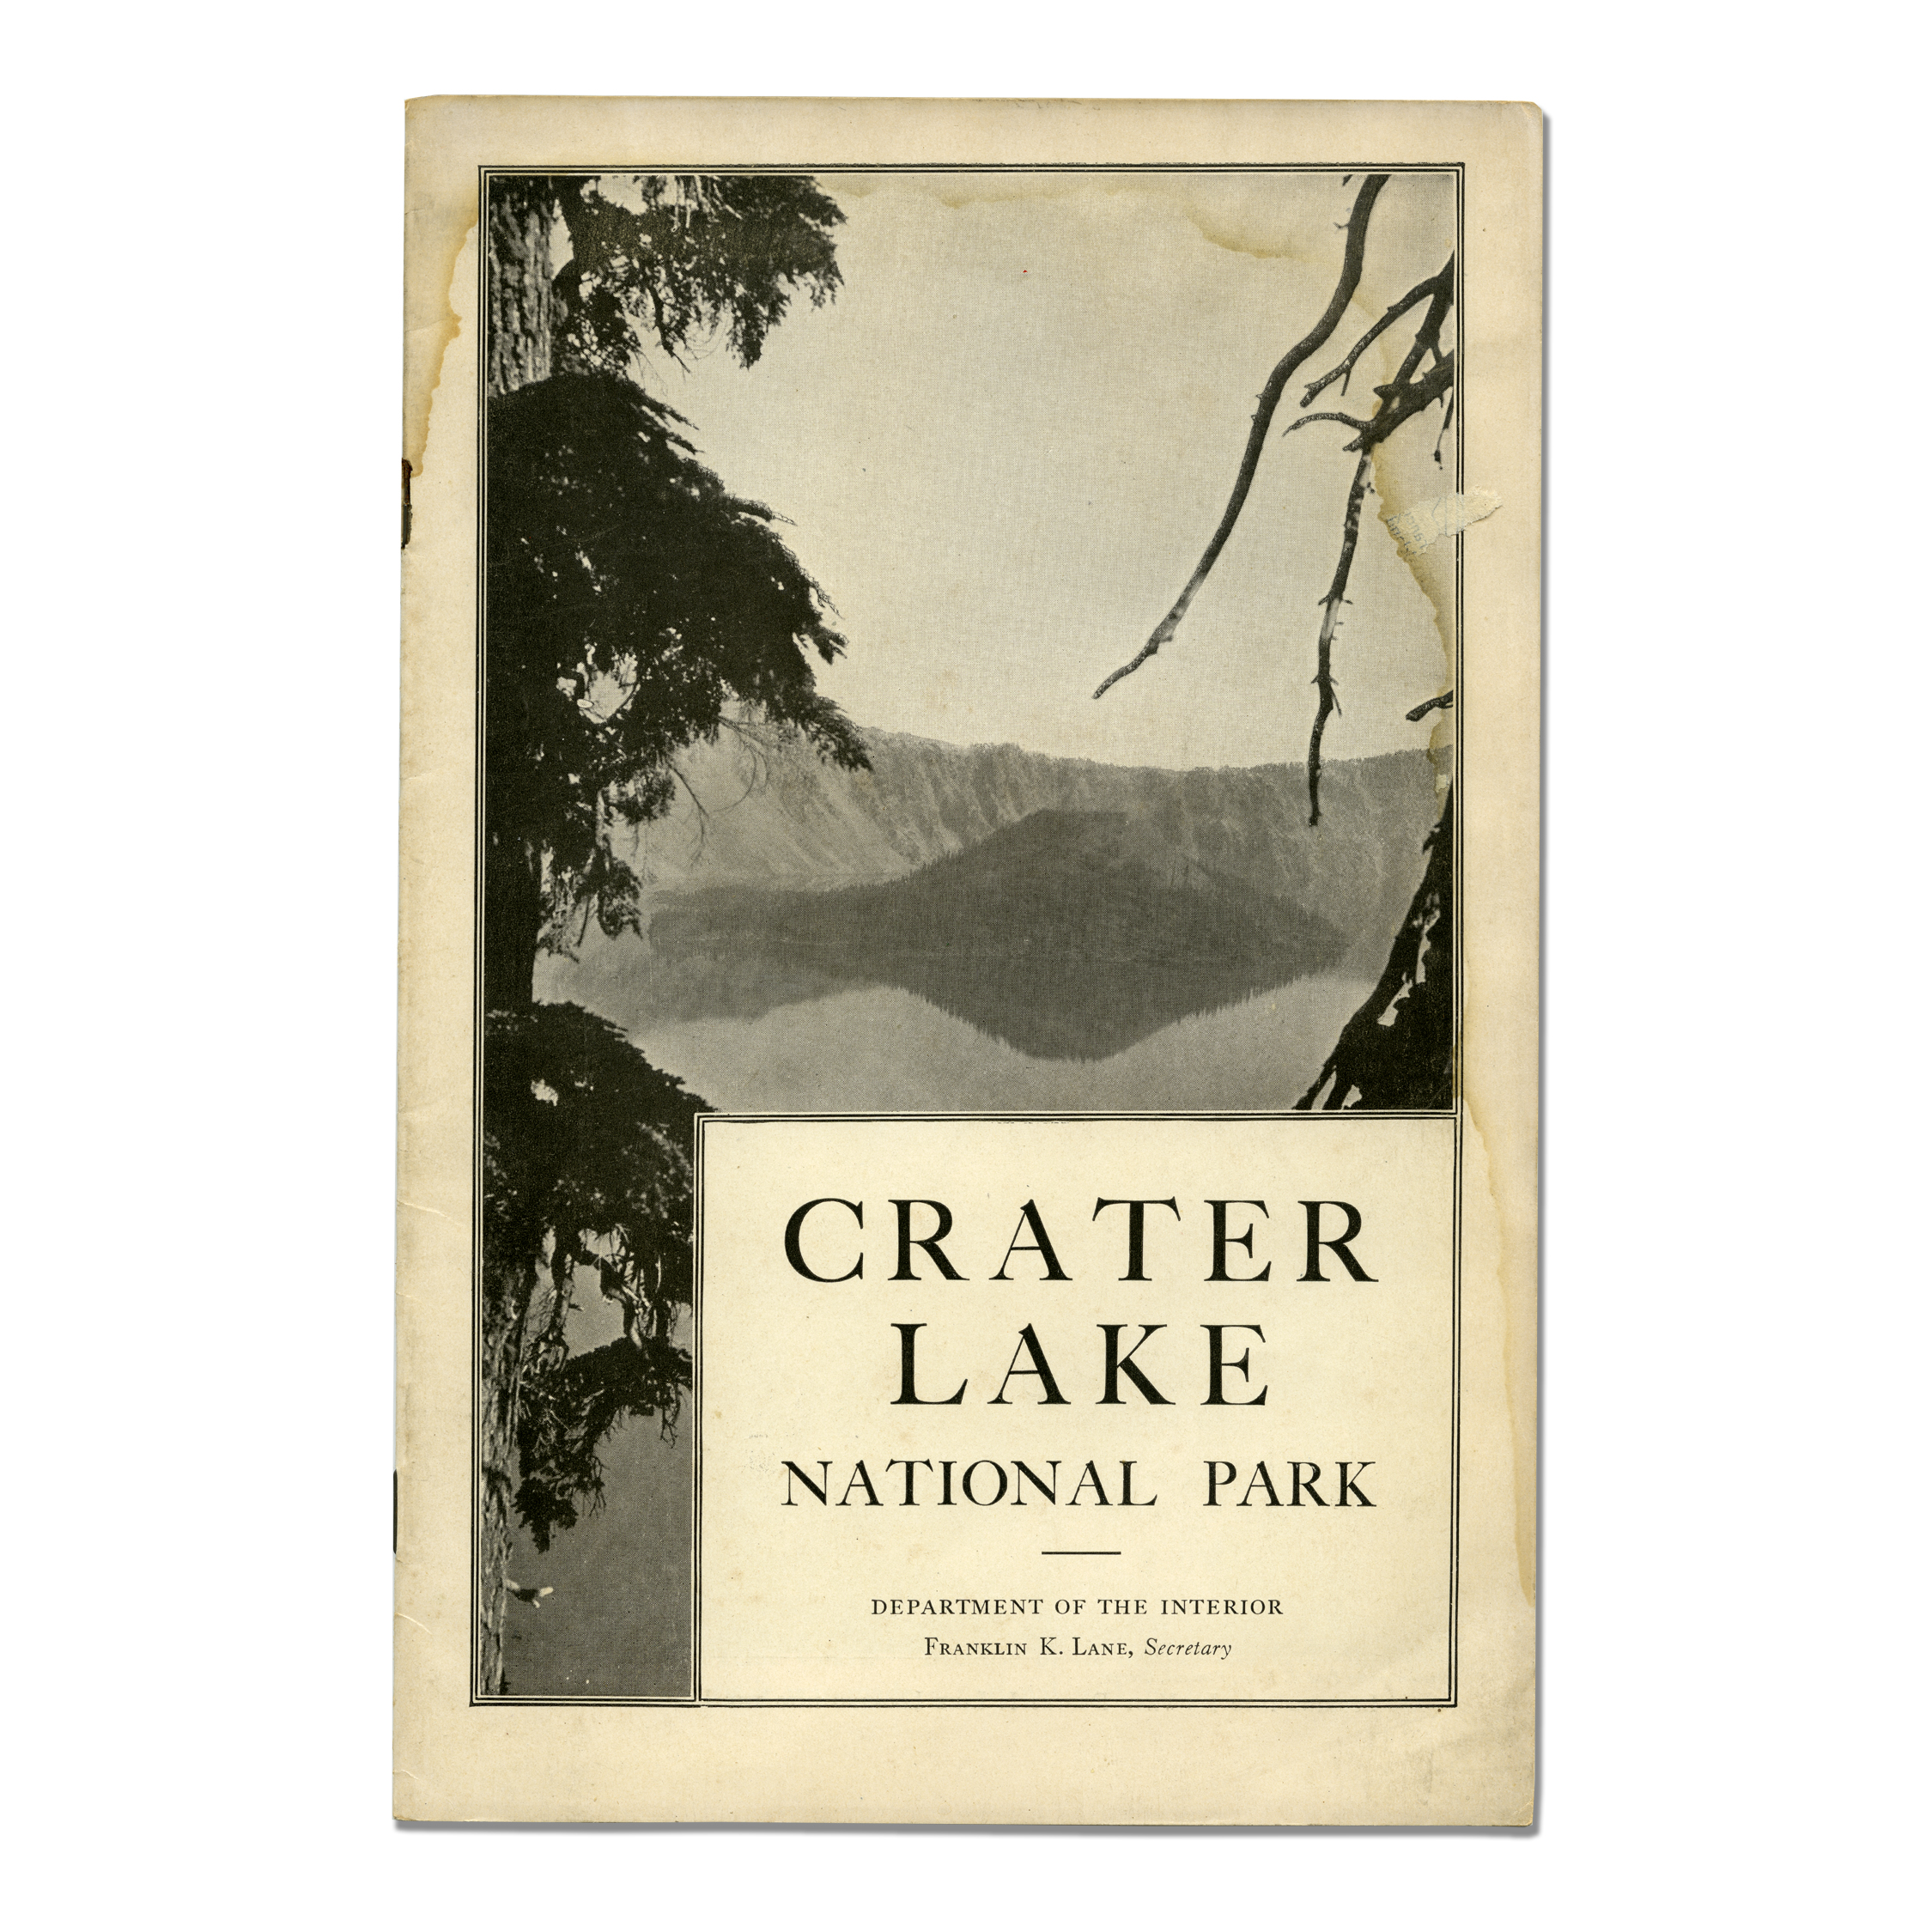 1916_crater_lake_national_park_department_of_the_interior_portfolio.jpg